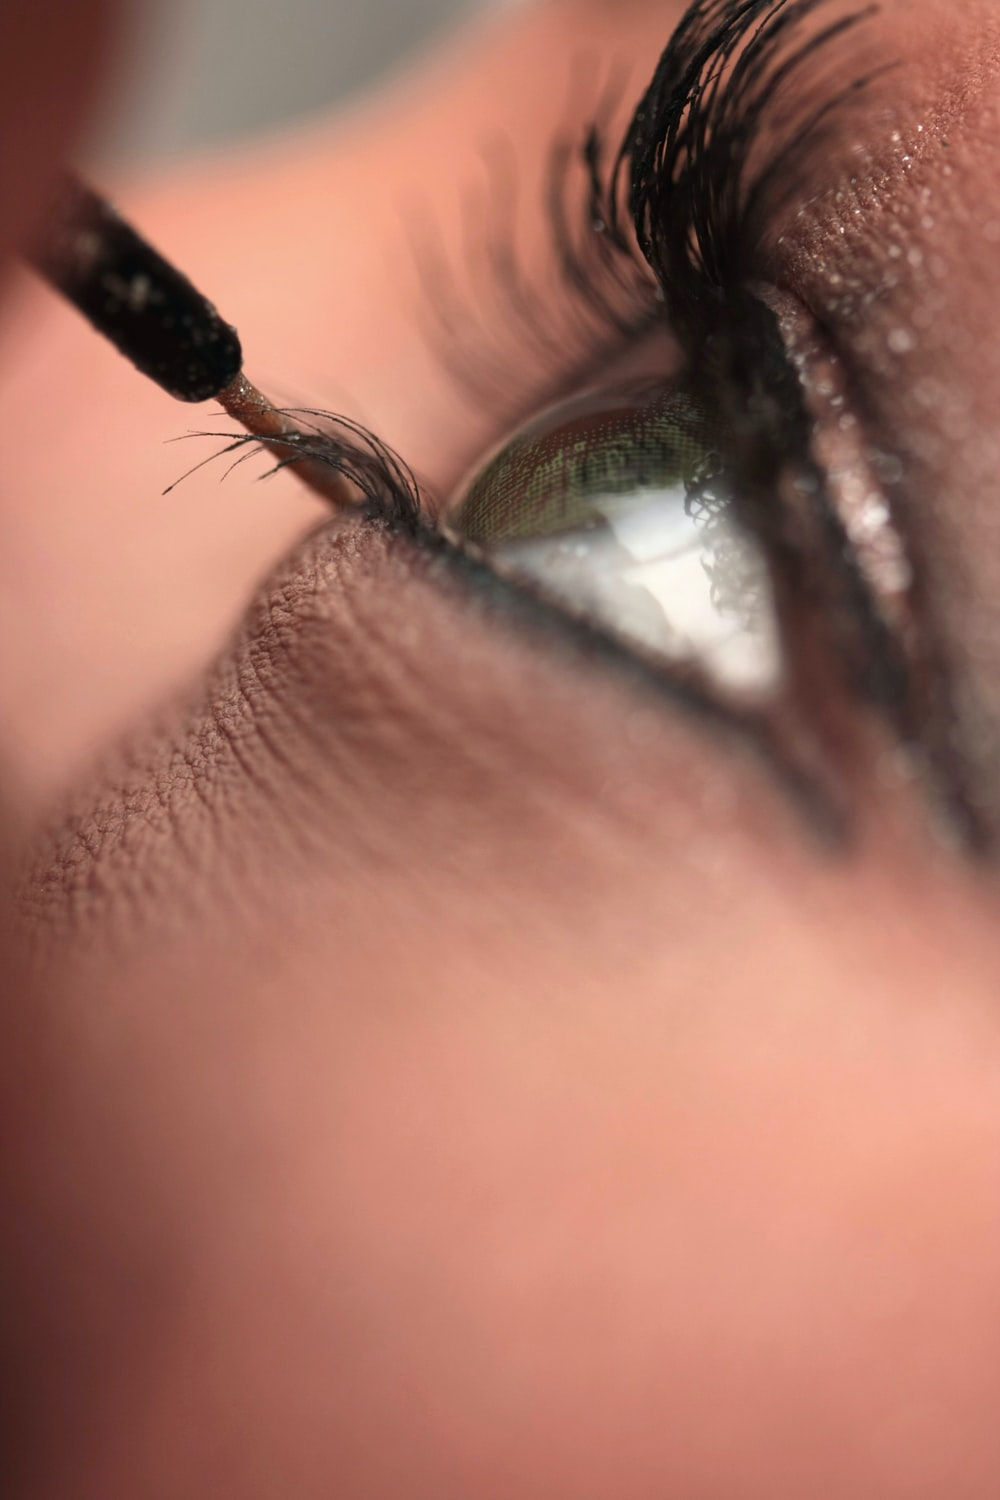 persons eye with black hair tie